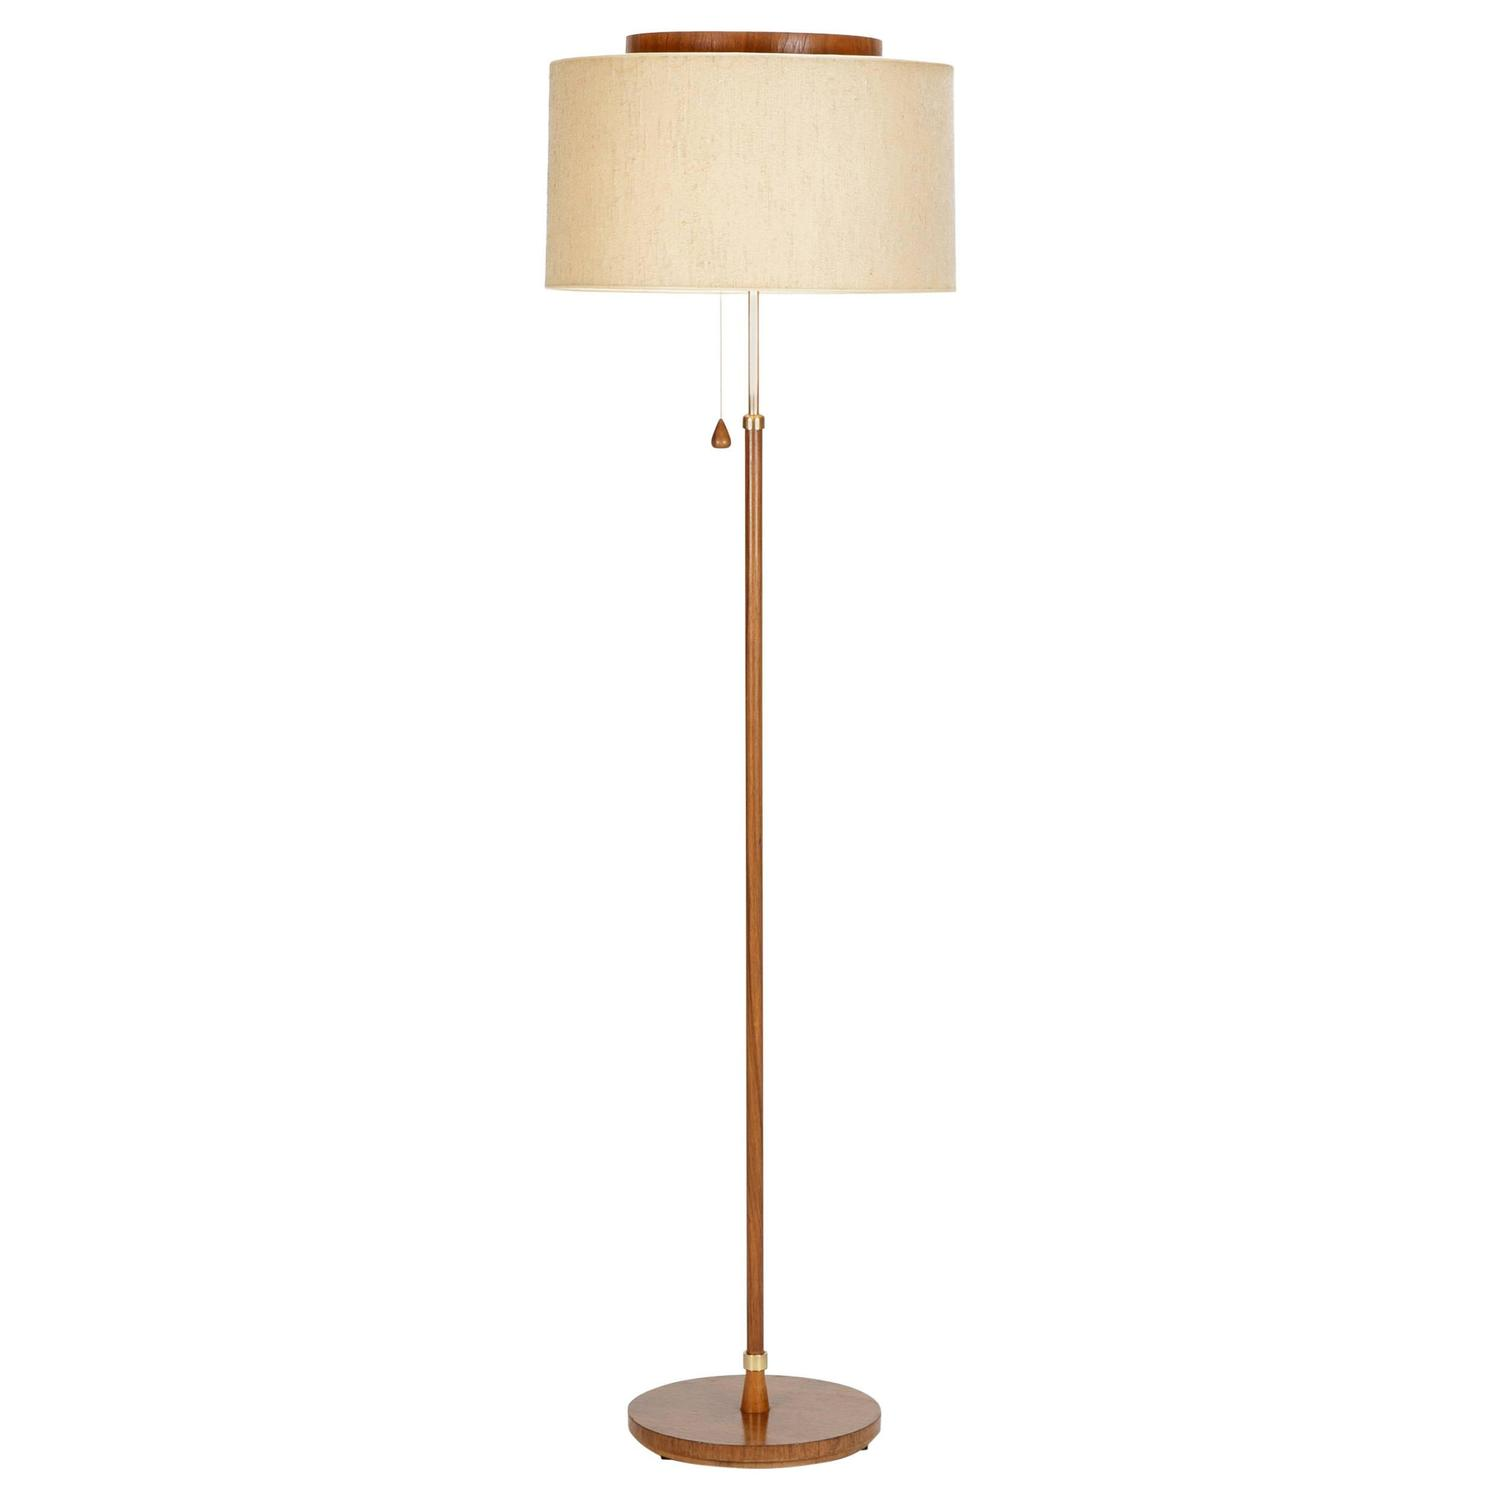 Teak floor lamp by temde leuchten 1950 for sale at 1stdibs for Milan floor lamp antique brass 165cm